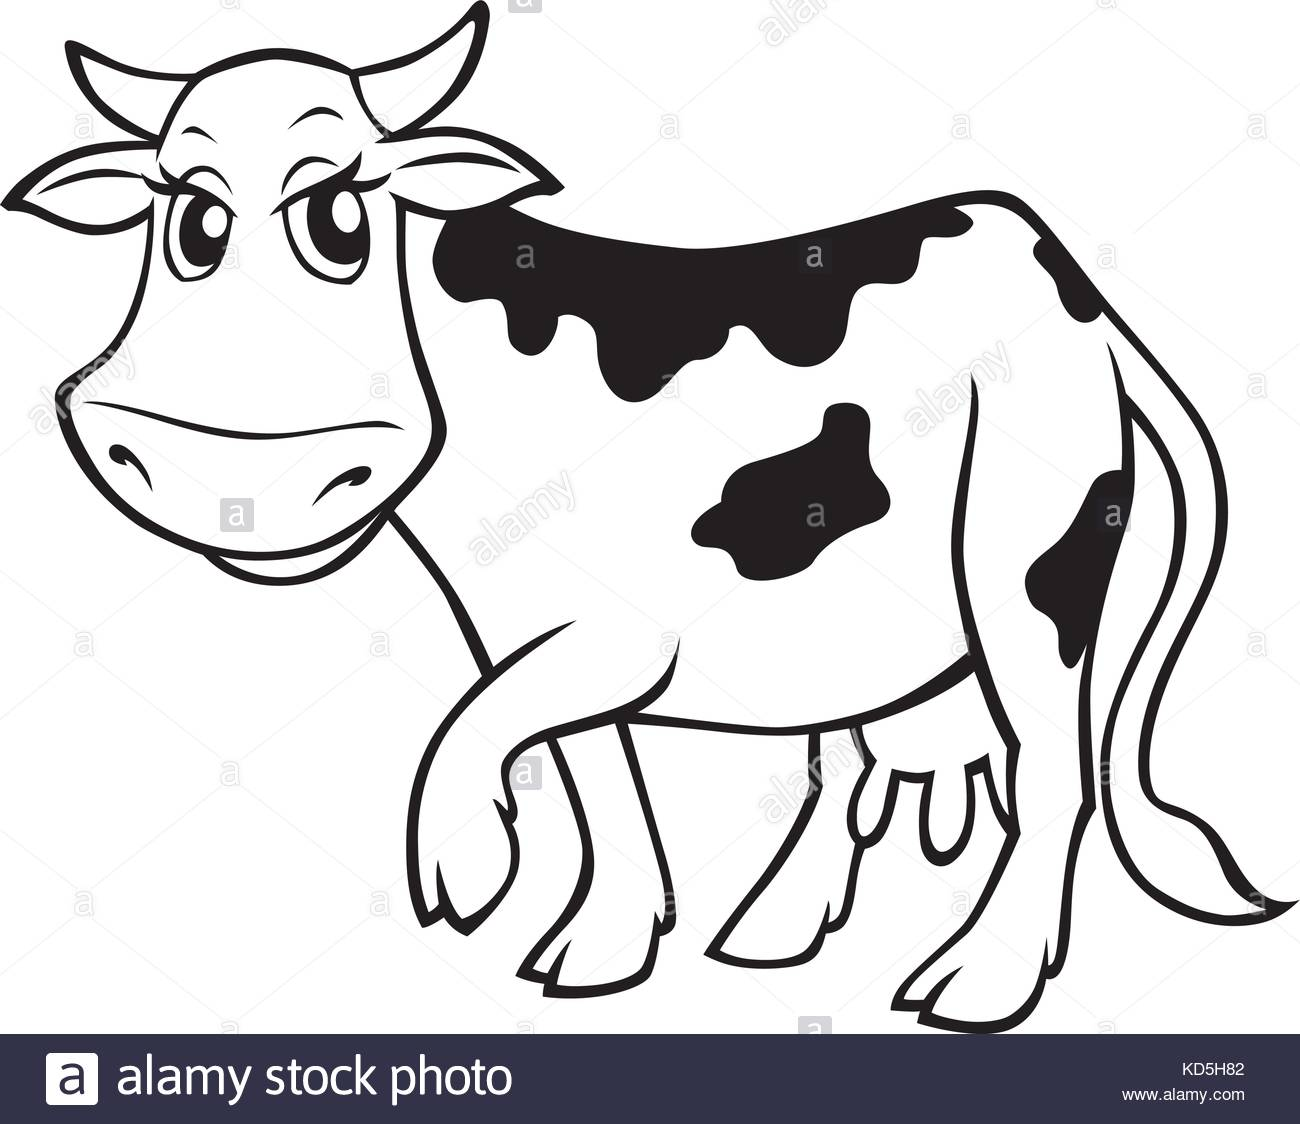 1300x1124 Cattle Stock Vector Images